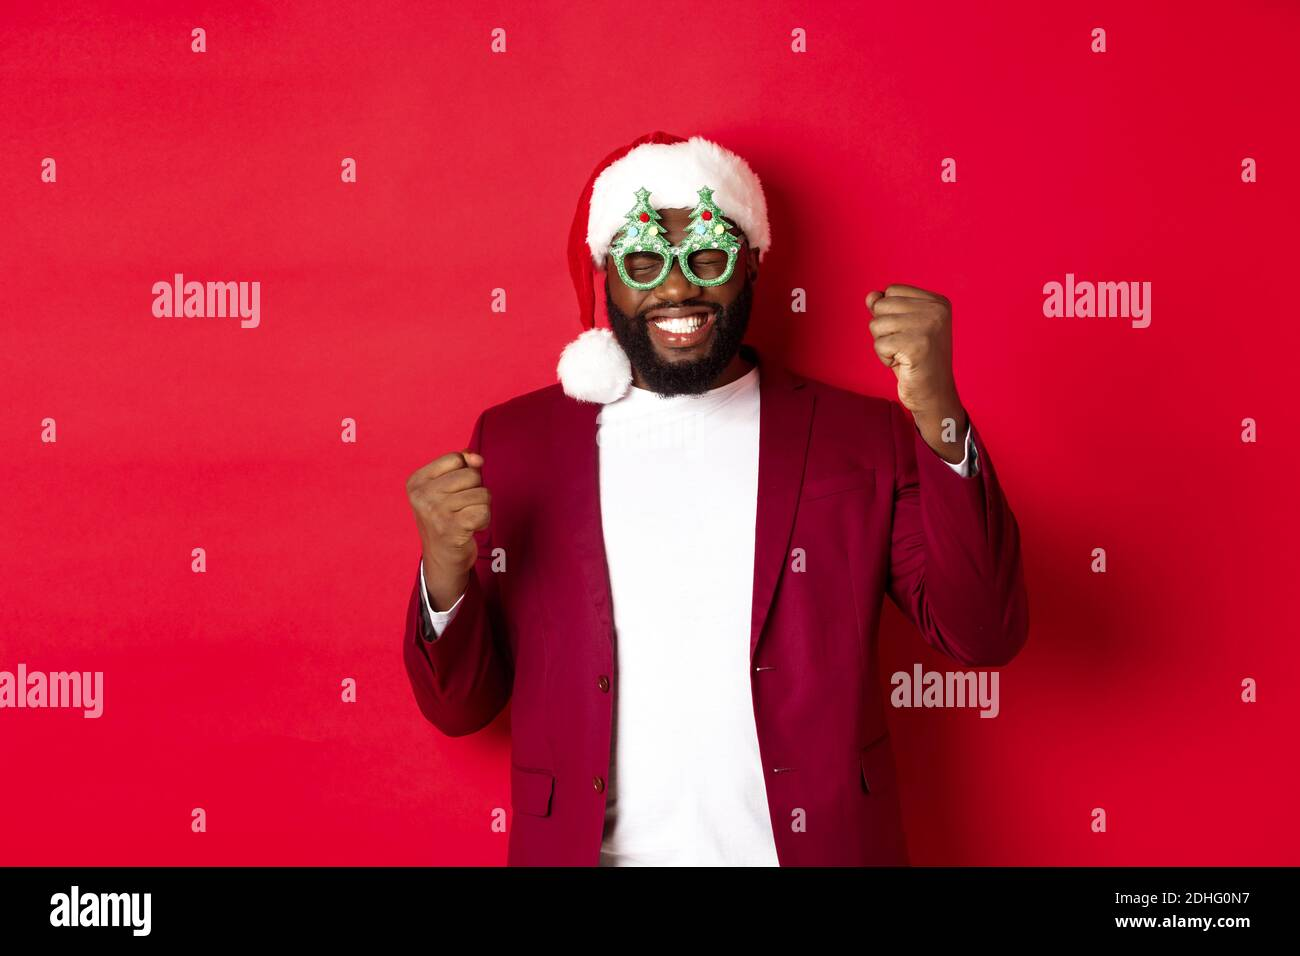 Merry Christmas. Cheerful Black man wearing funny party glasses and santa hat, smiling joyful, celebrating winter holidays, stan Stock Photo